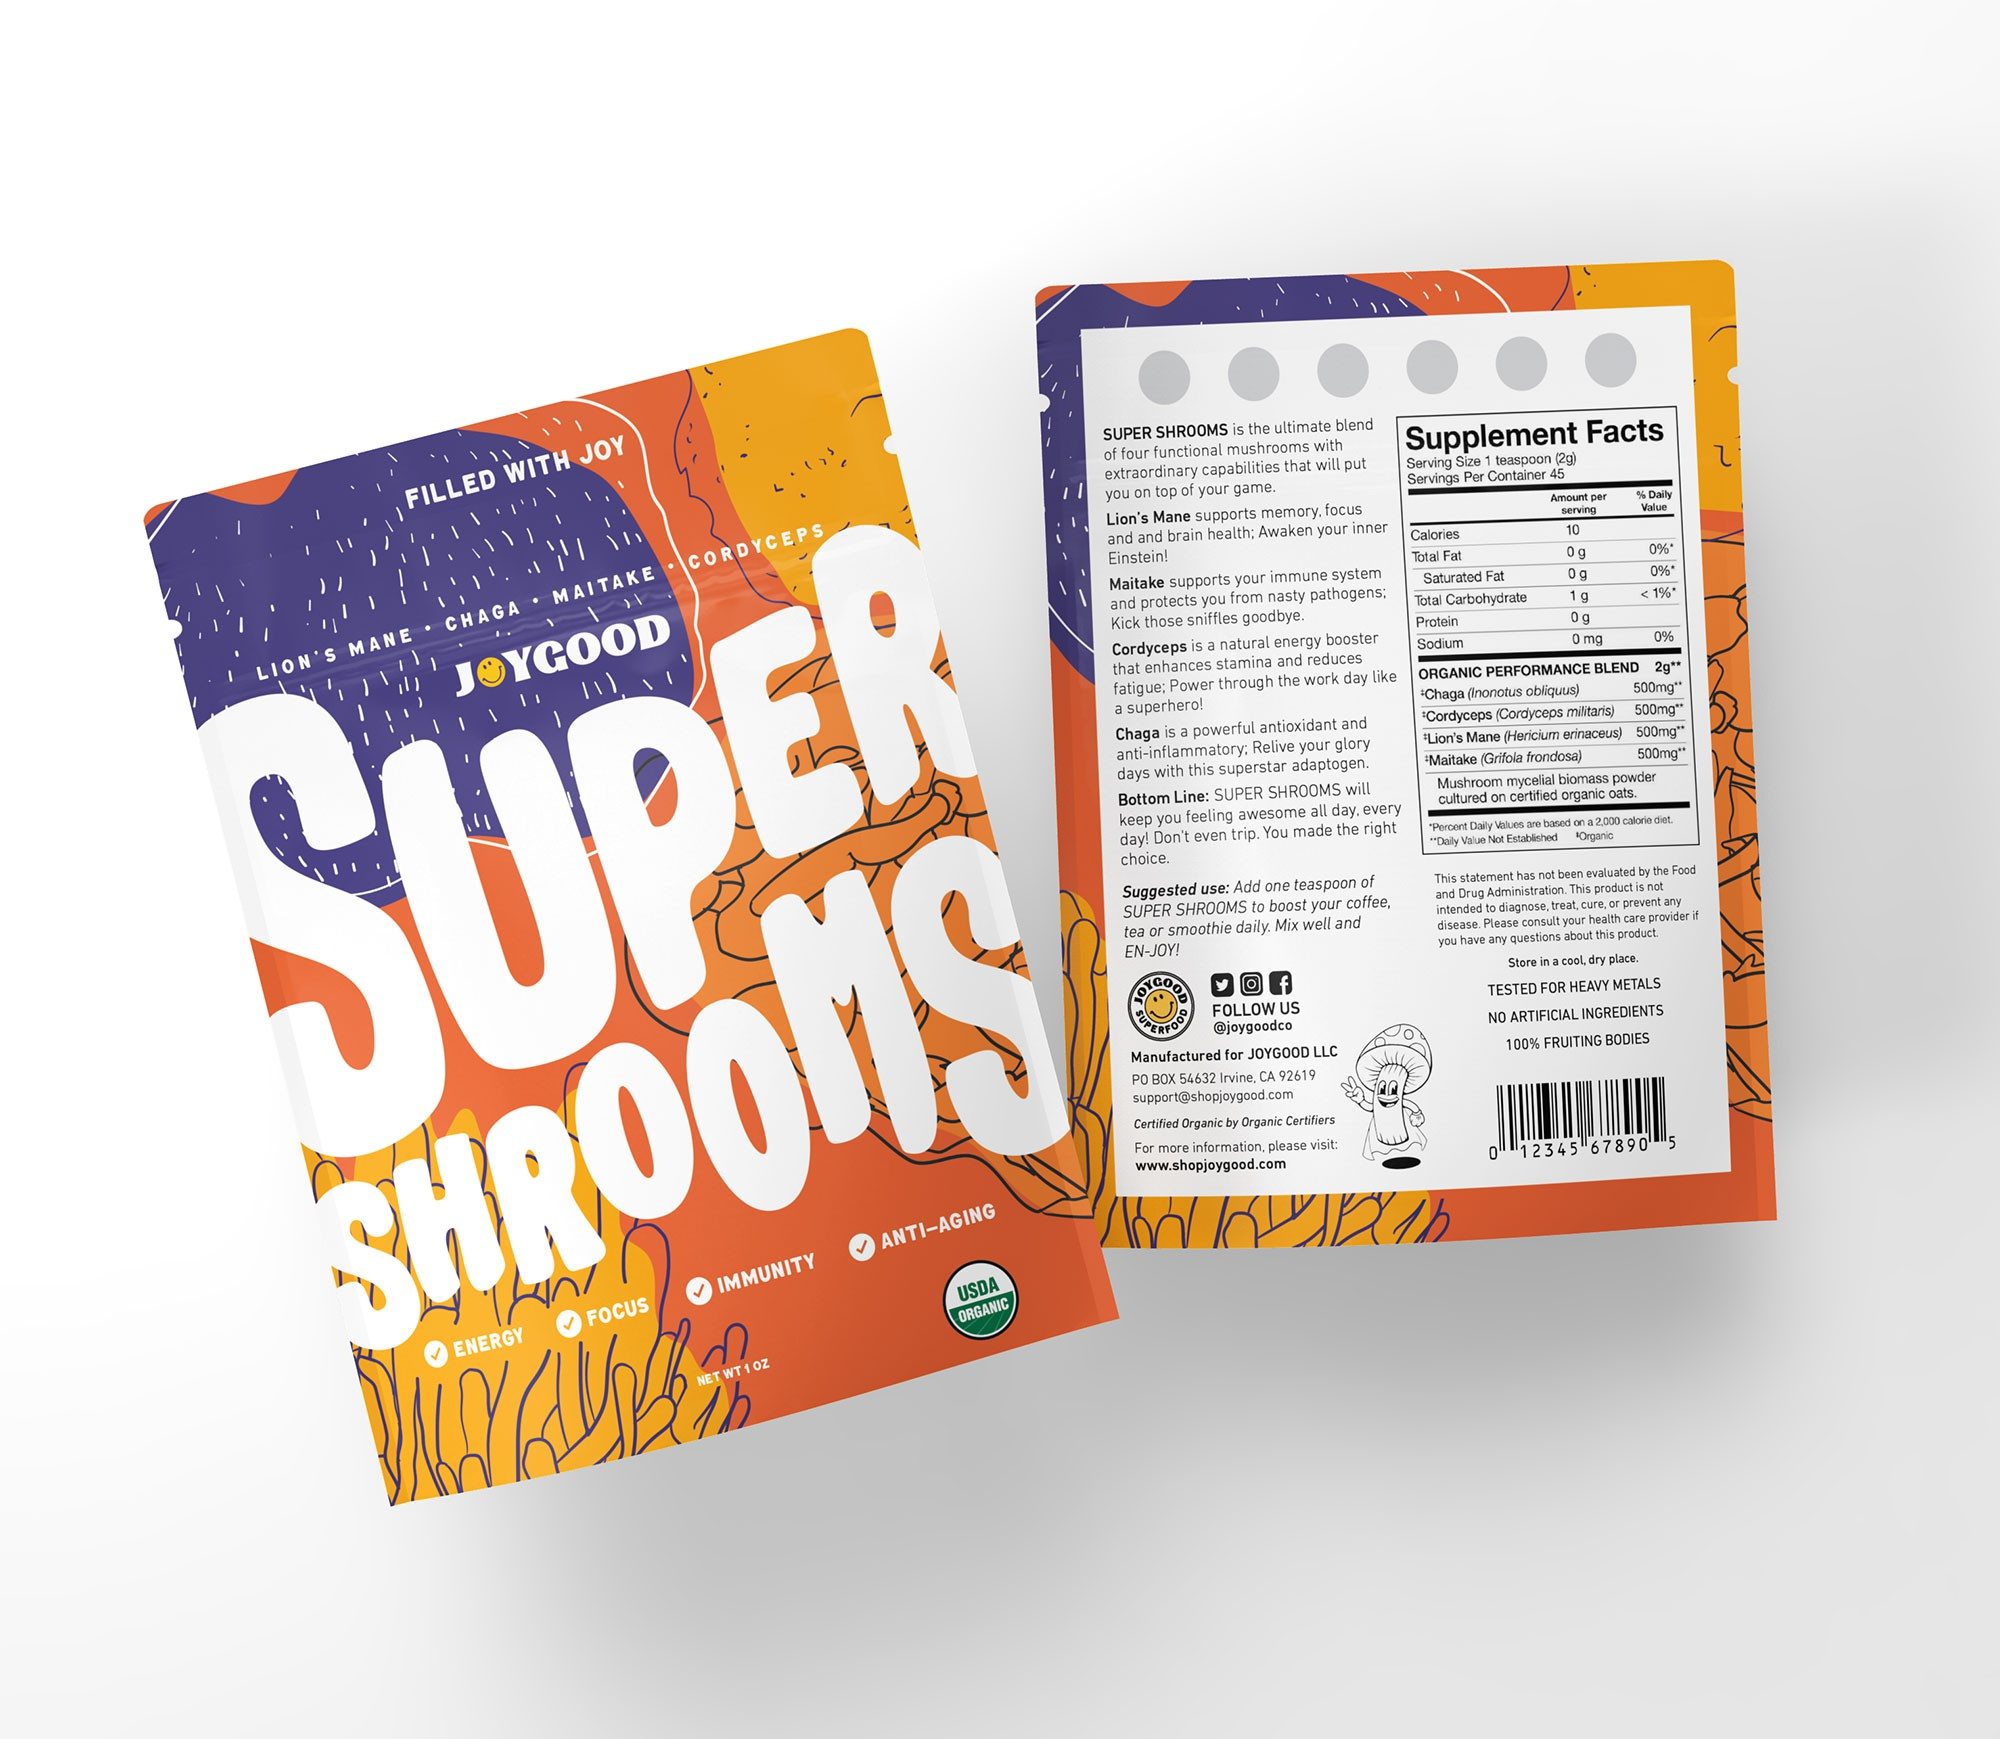 We need KICK ASS packaging for our Organic Superfood product!